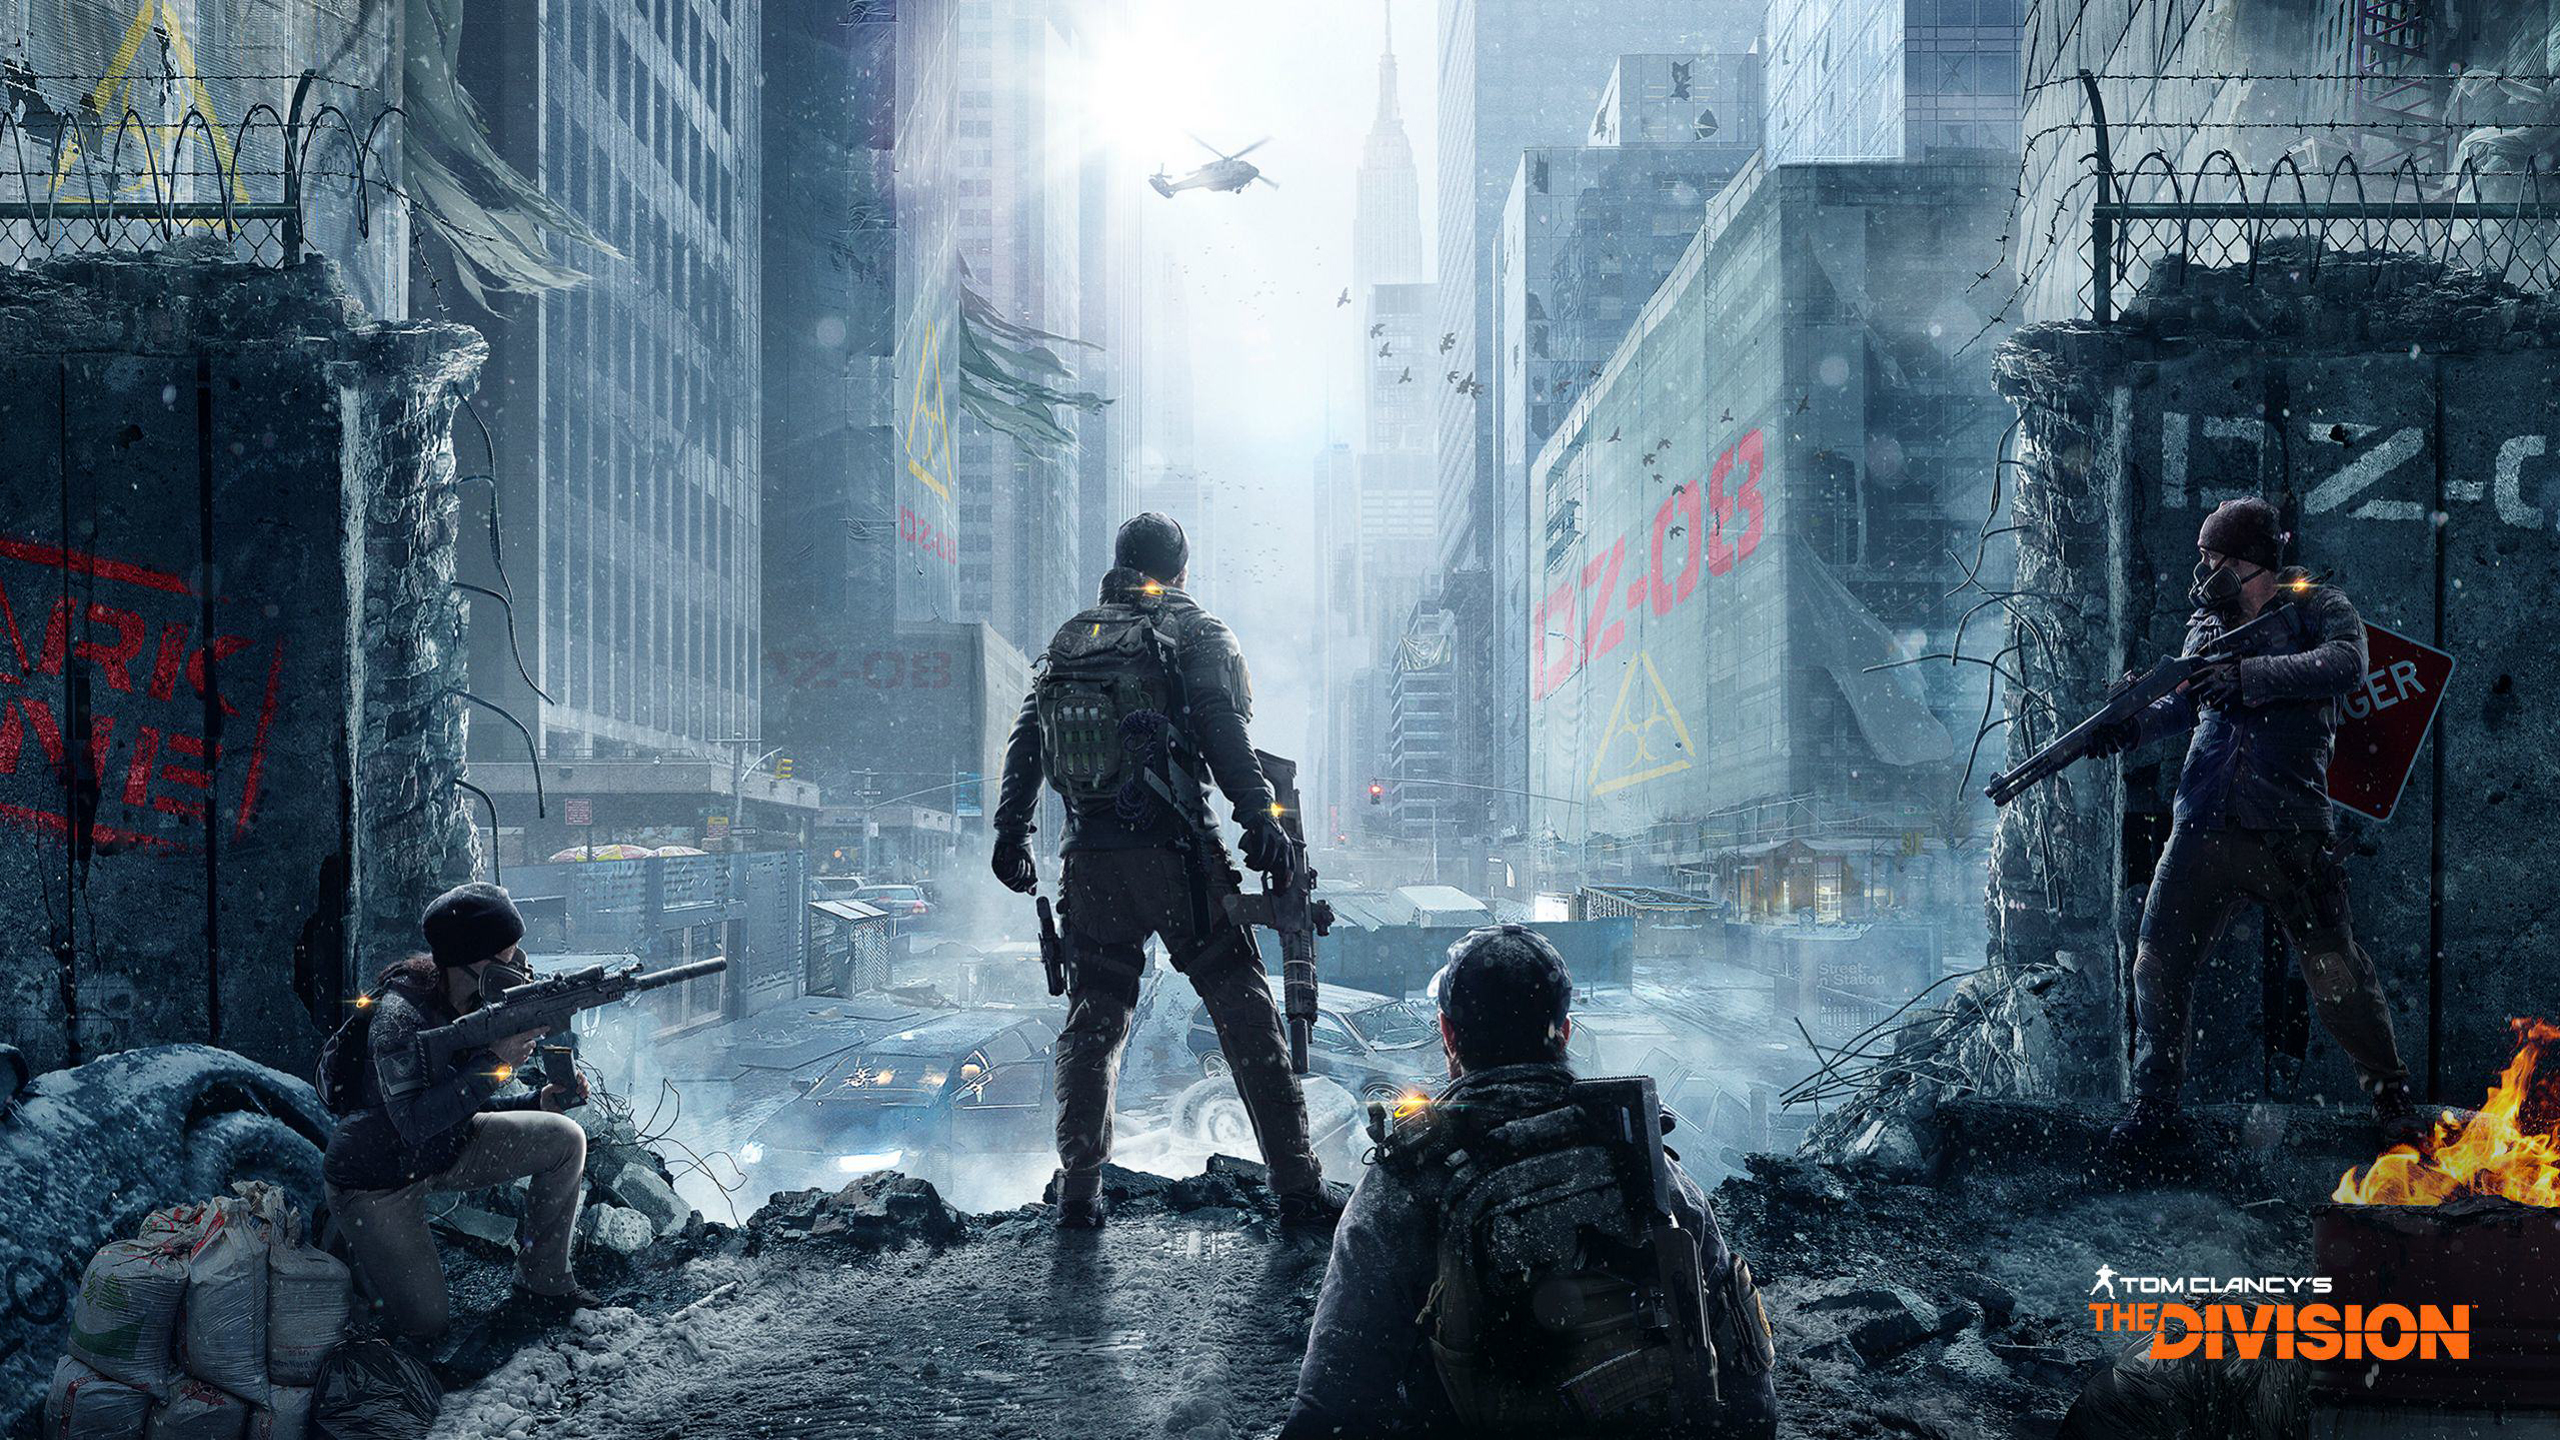 97 tom clancy's the division hd wallpapers | background images